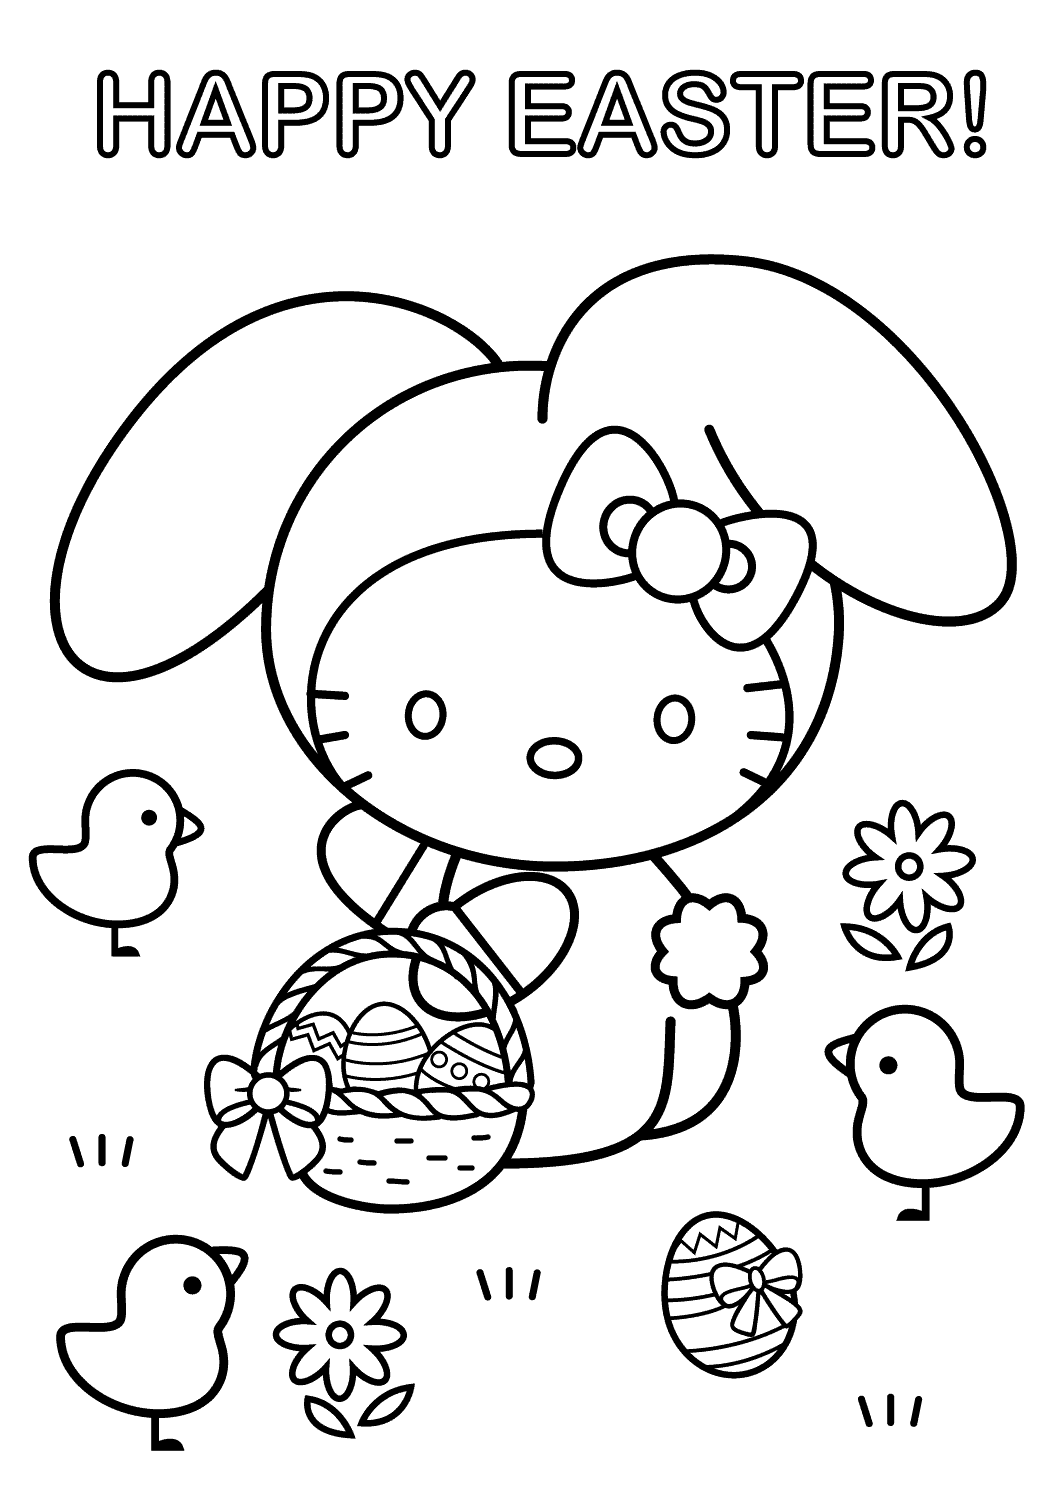 Preschool Easter Coloring Pages Coloring Pages